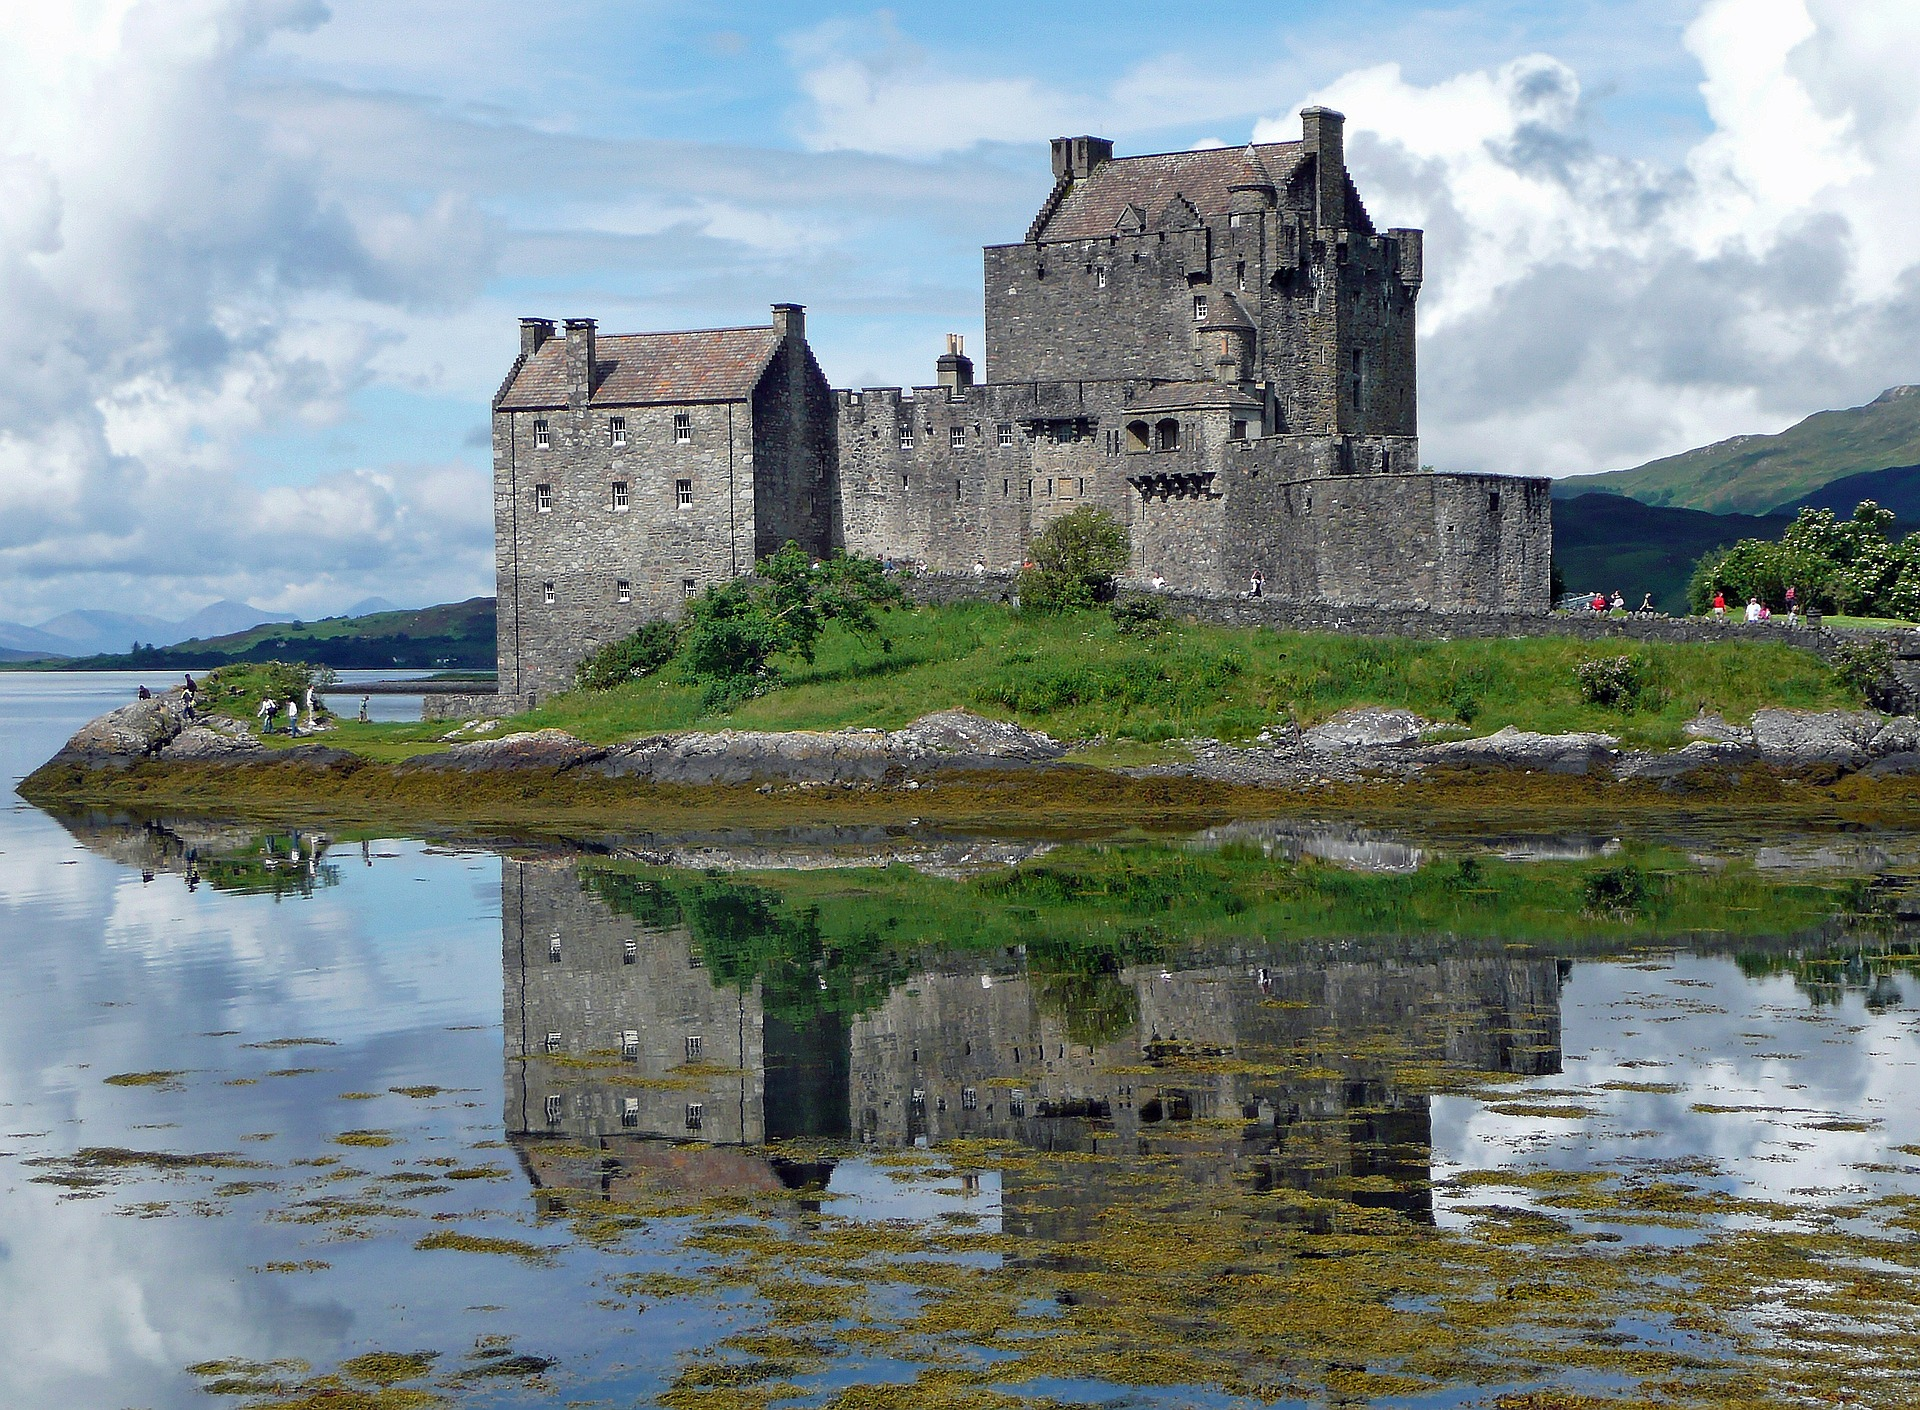 Romantic Britain & Ireland | Eilean Donan Castle, Island in Loch Duich, Scotland, UK